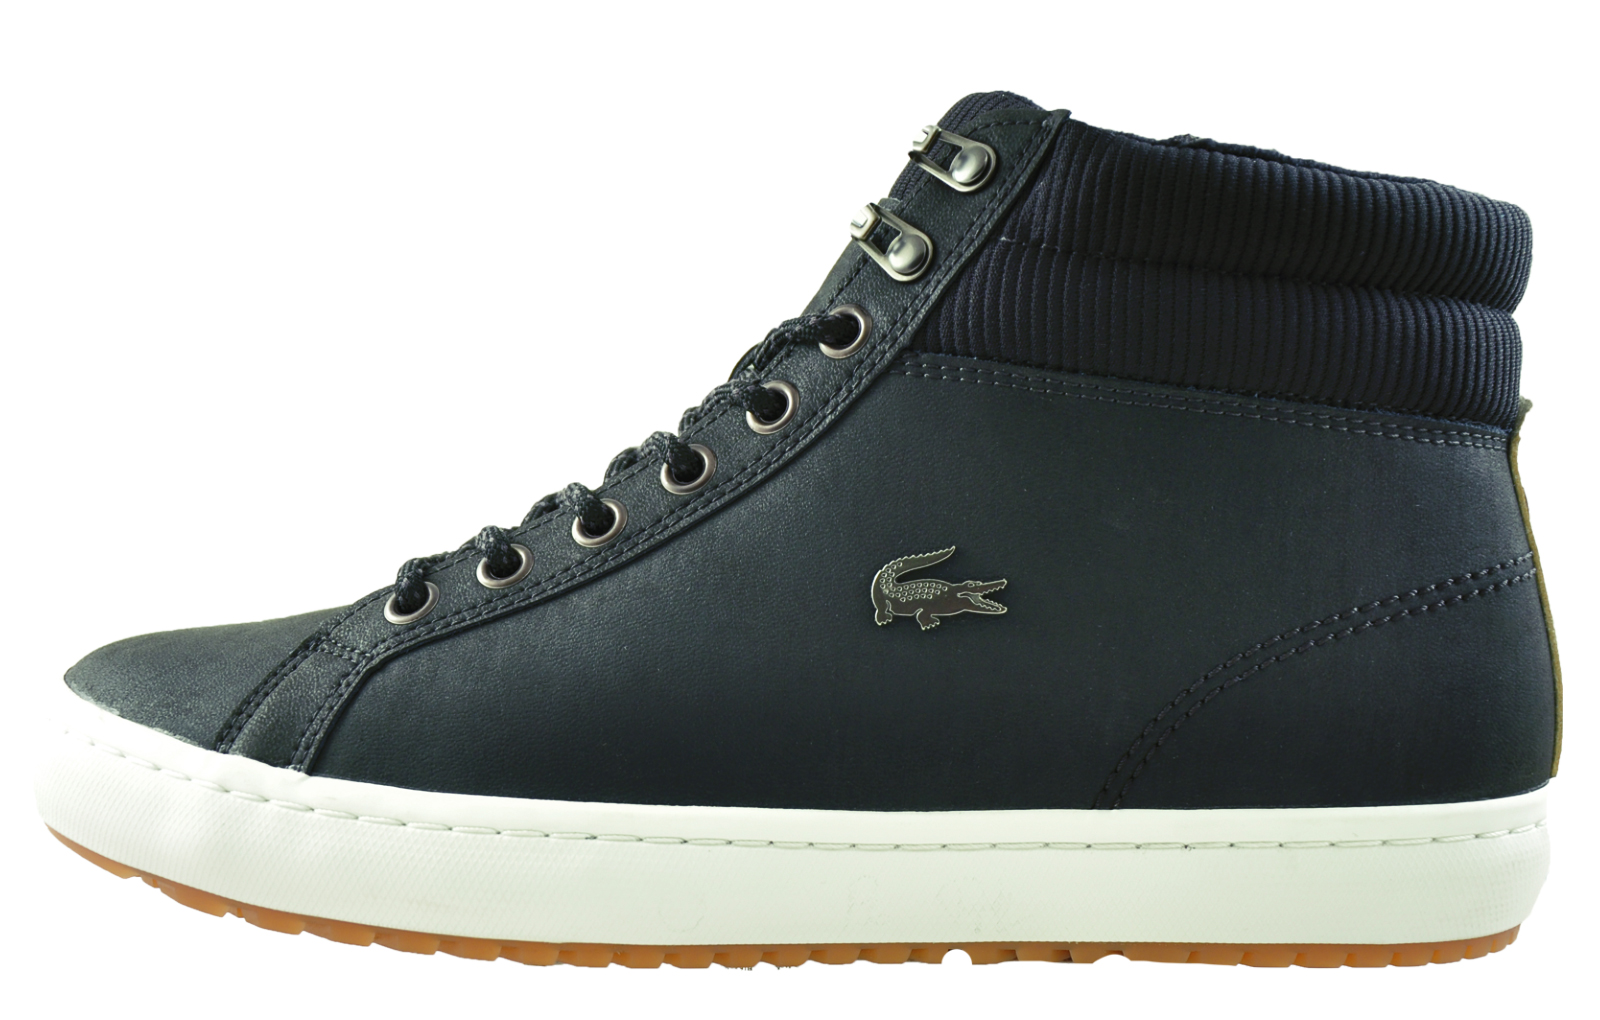 d51cc2085 Lacoste Straightset Insulac B Grade Mens